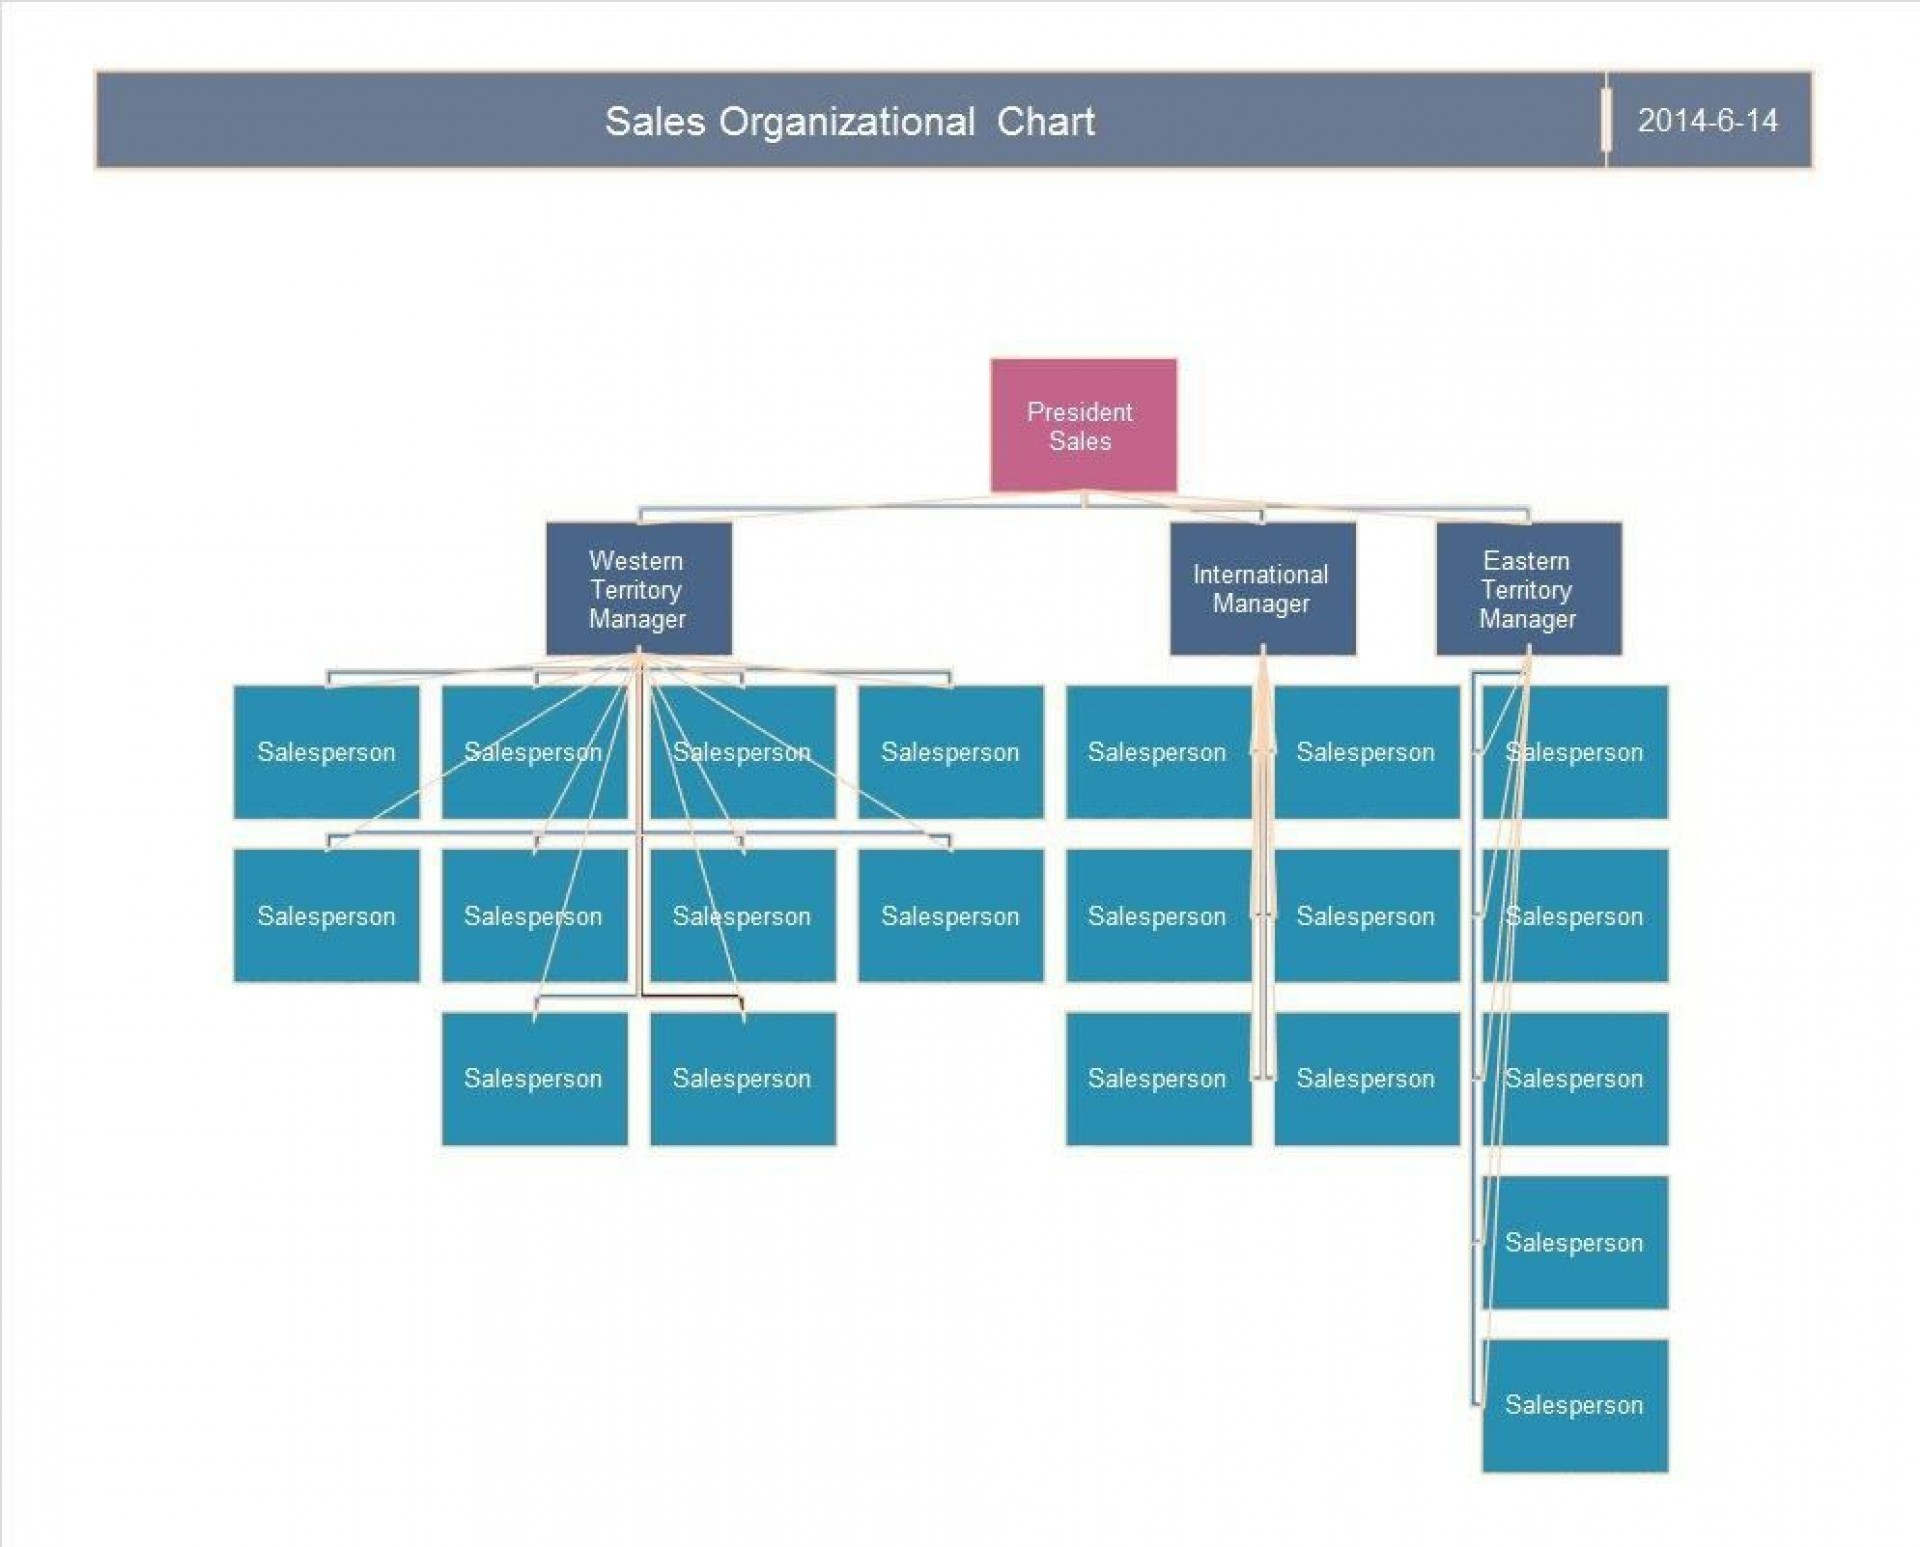 006 Dreaded Organization Chart Template Excel Download Photo  Org Organizational Format In1920